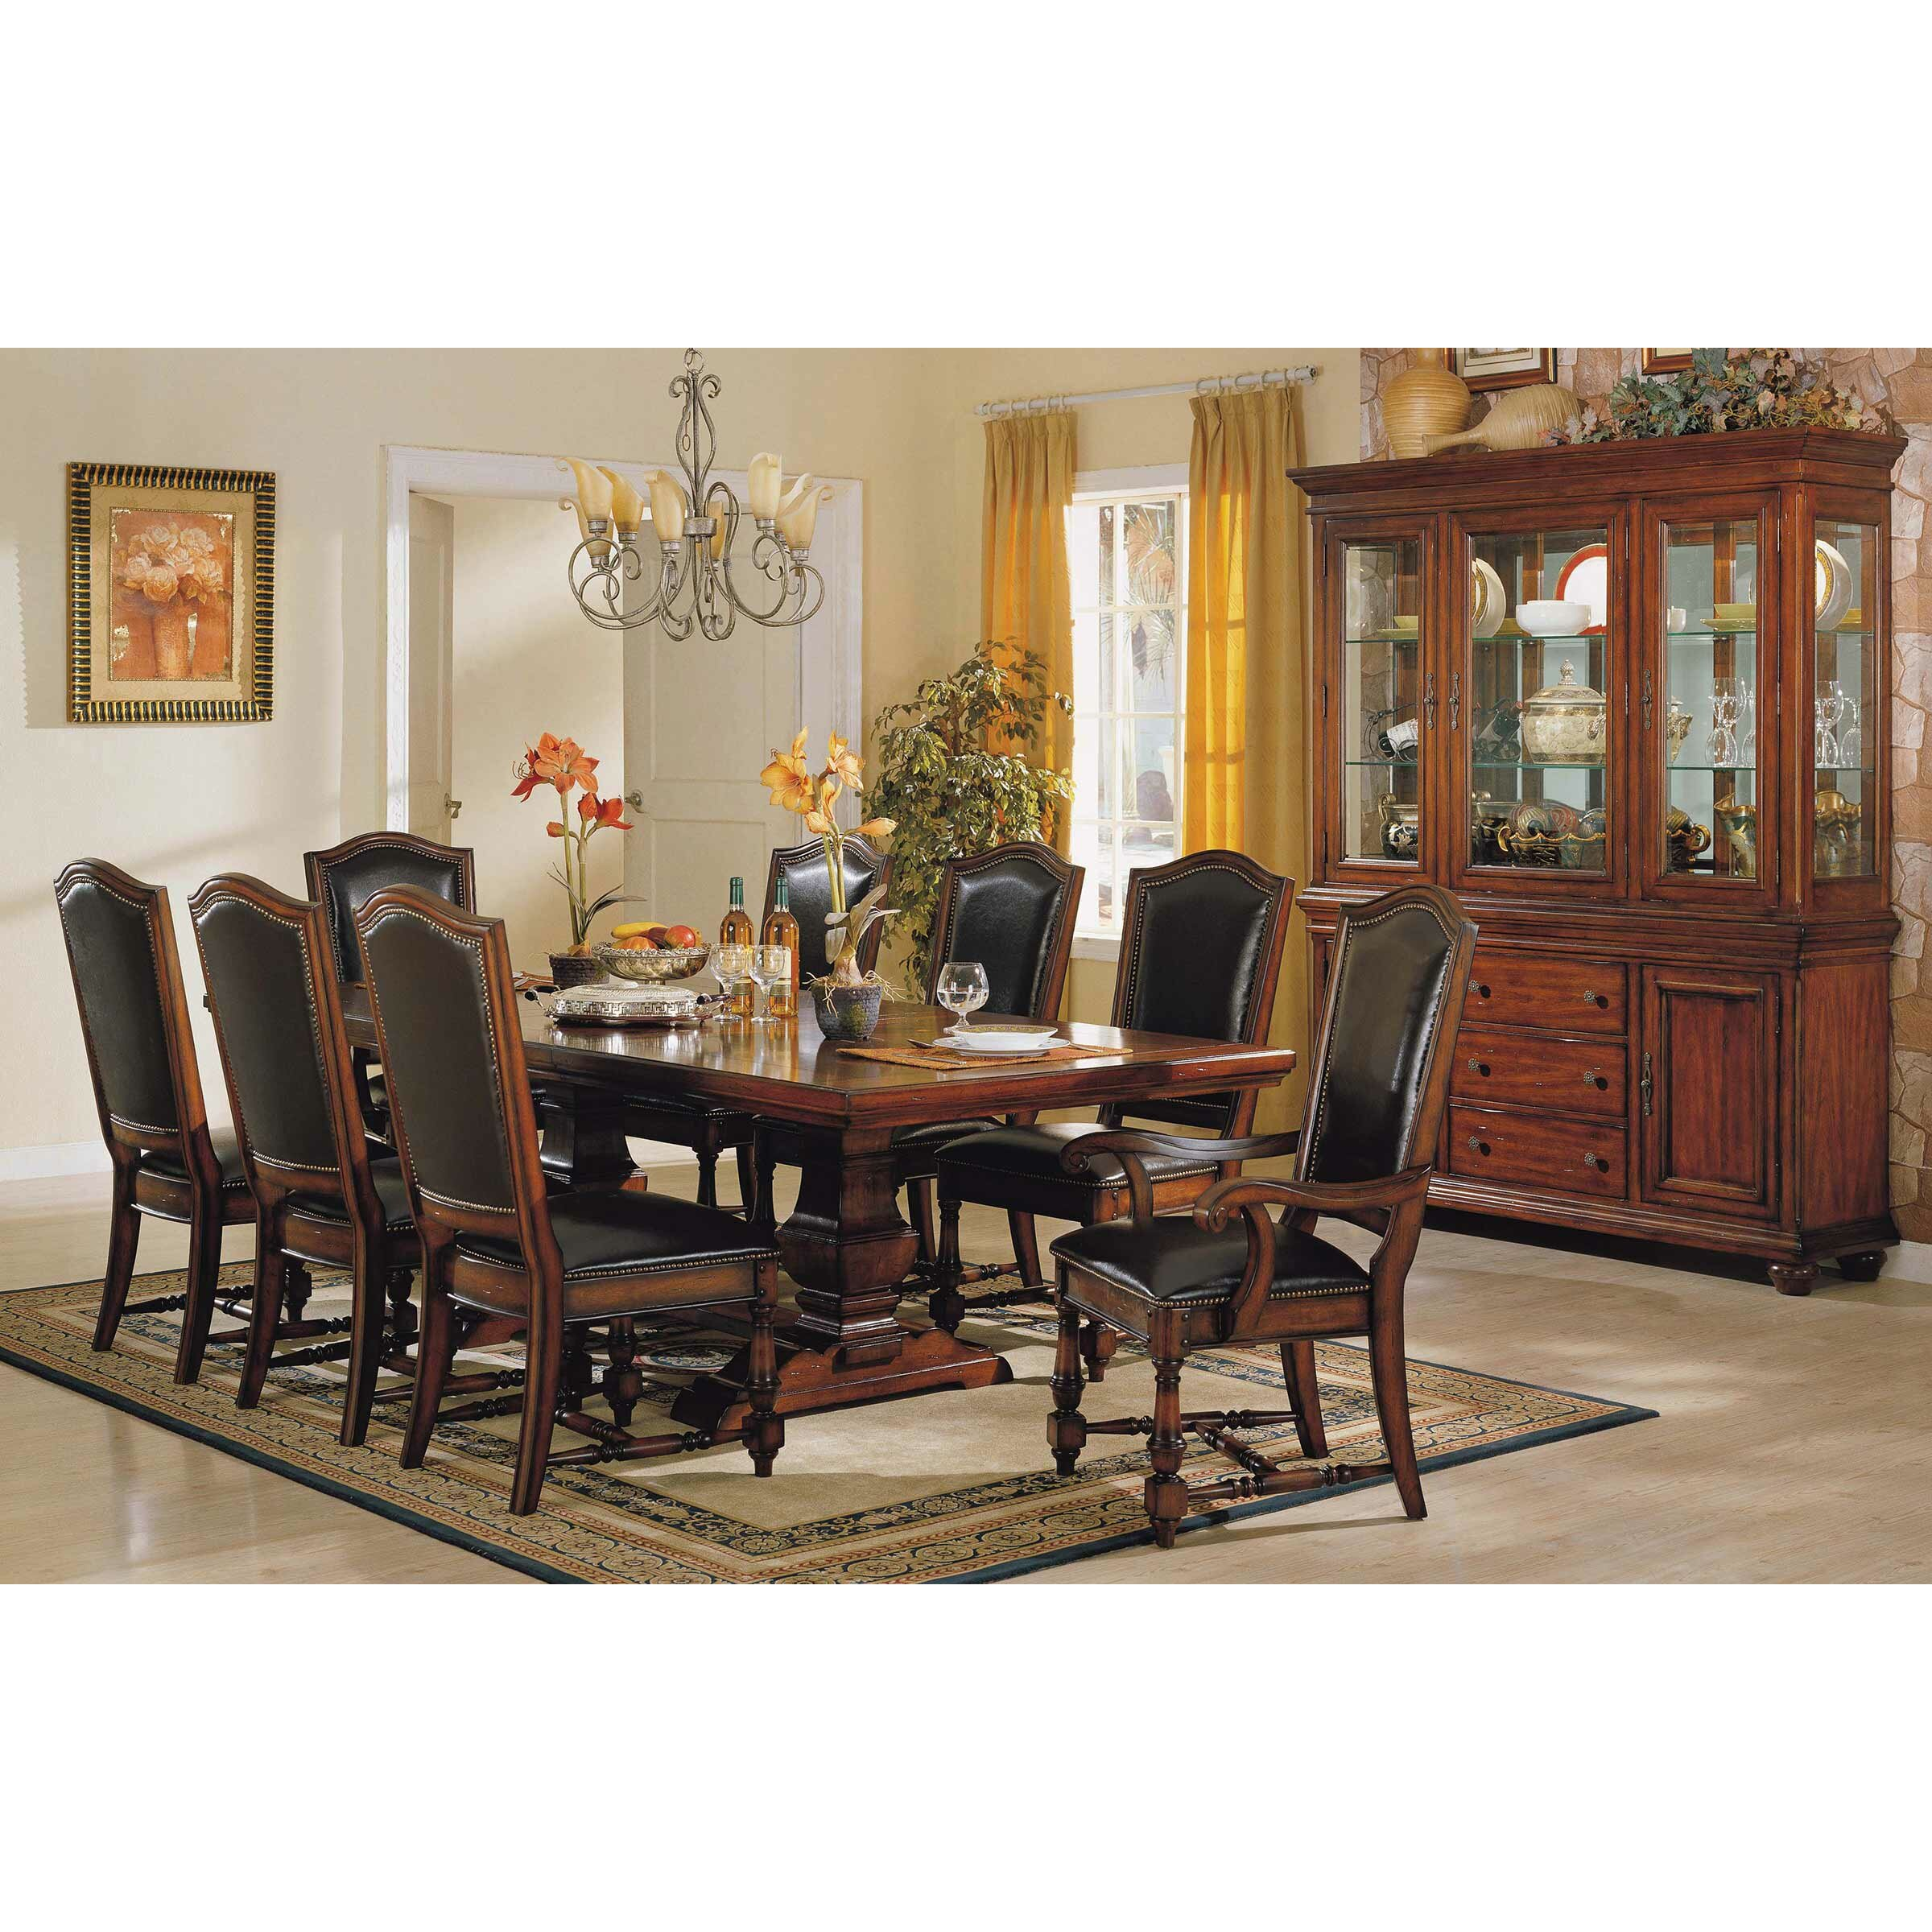 Darby Home Co Sellman Extendable Dining Table amp Reviews  : Darby Home Co25C225AE Sellman Extendable Dining Table from www.wayfair.com size 2400 x 2400 jpeg 801kB